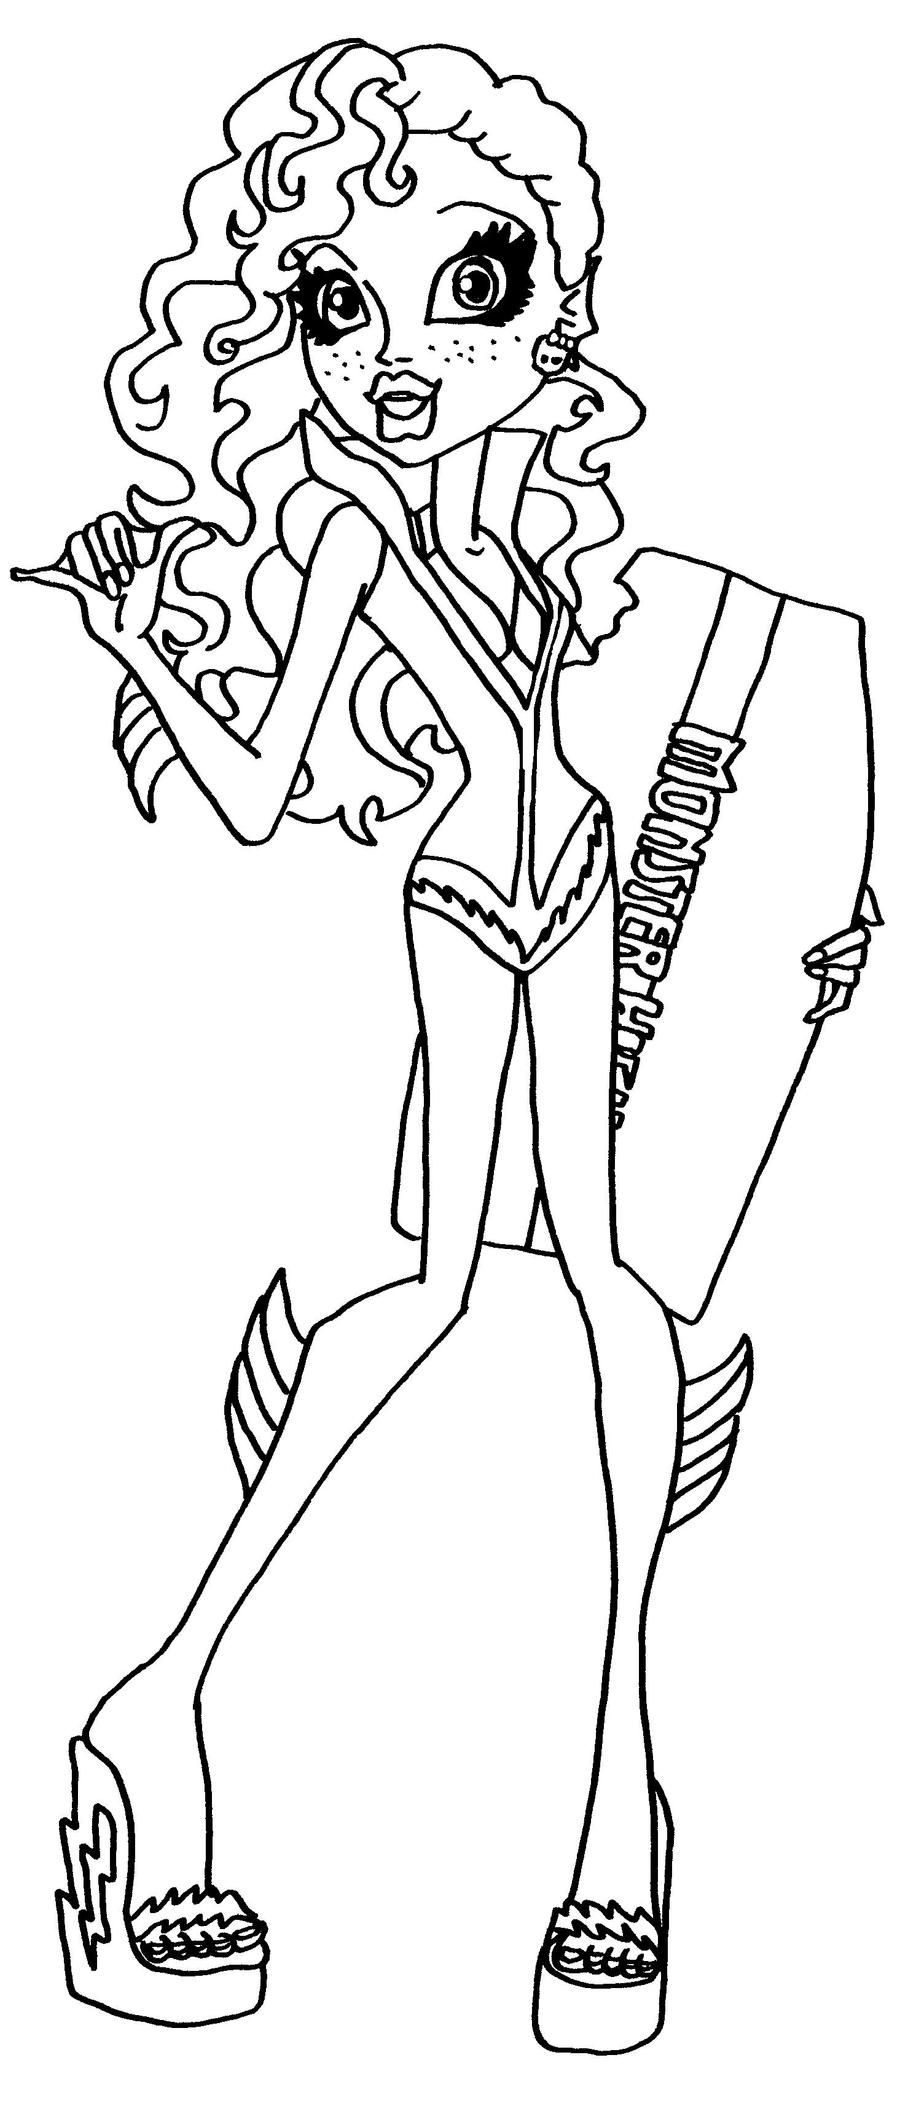 Lagoona blue 4 by elfkena on deviantart for Monster high lagoona blue coloring pages